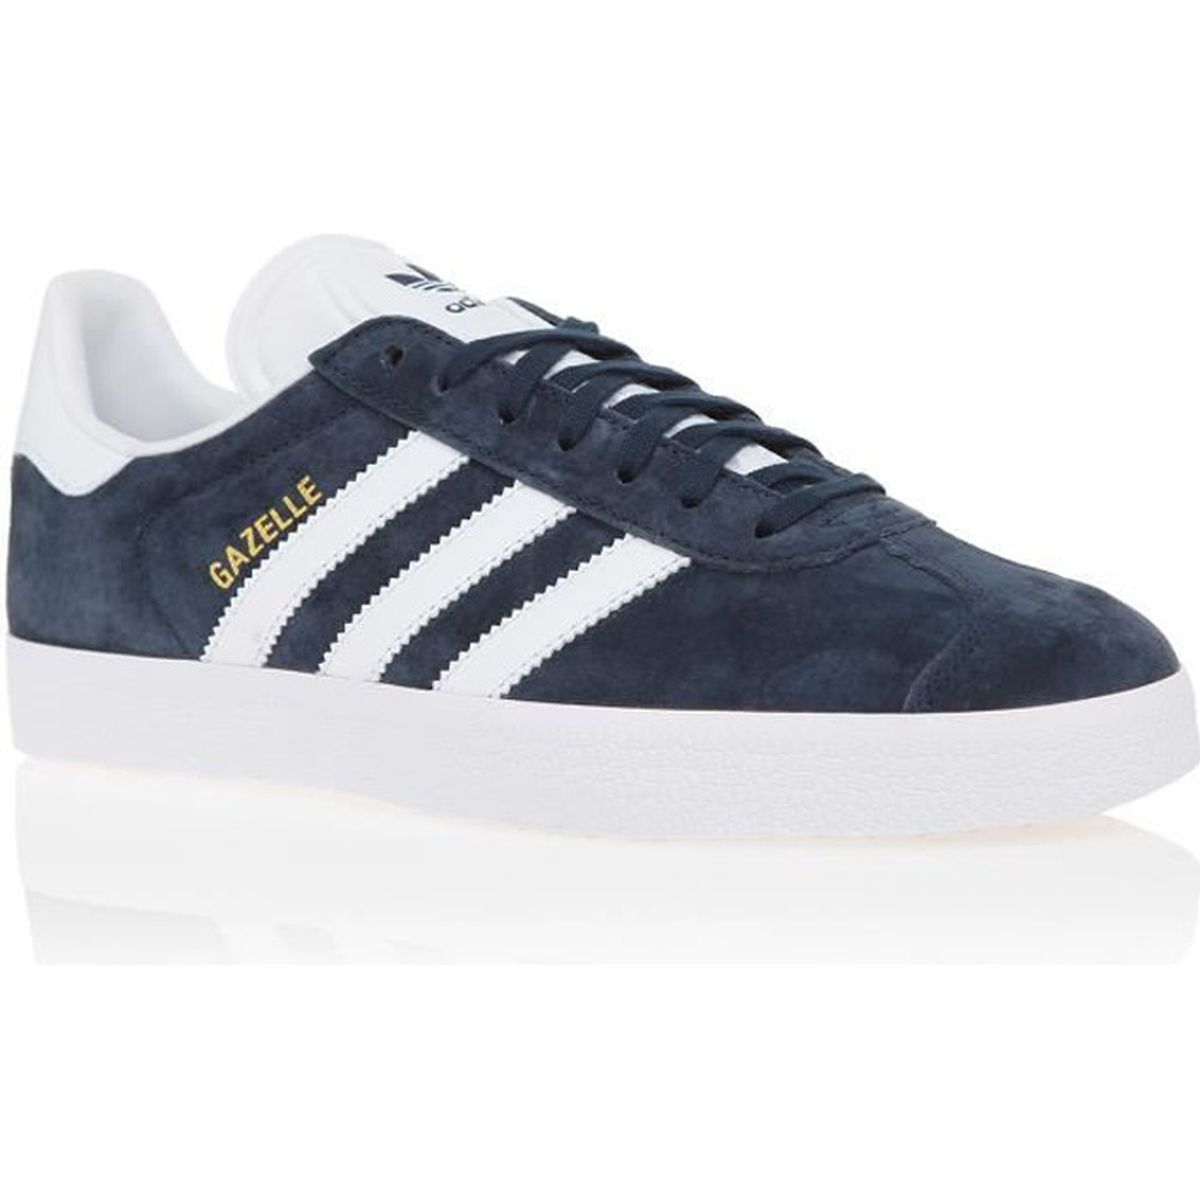 official photos ae402 f7d41 Adidas gazelle homme bleu